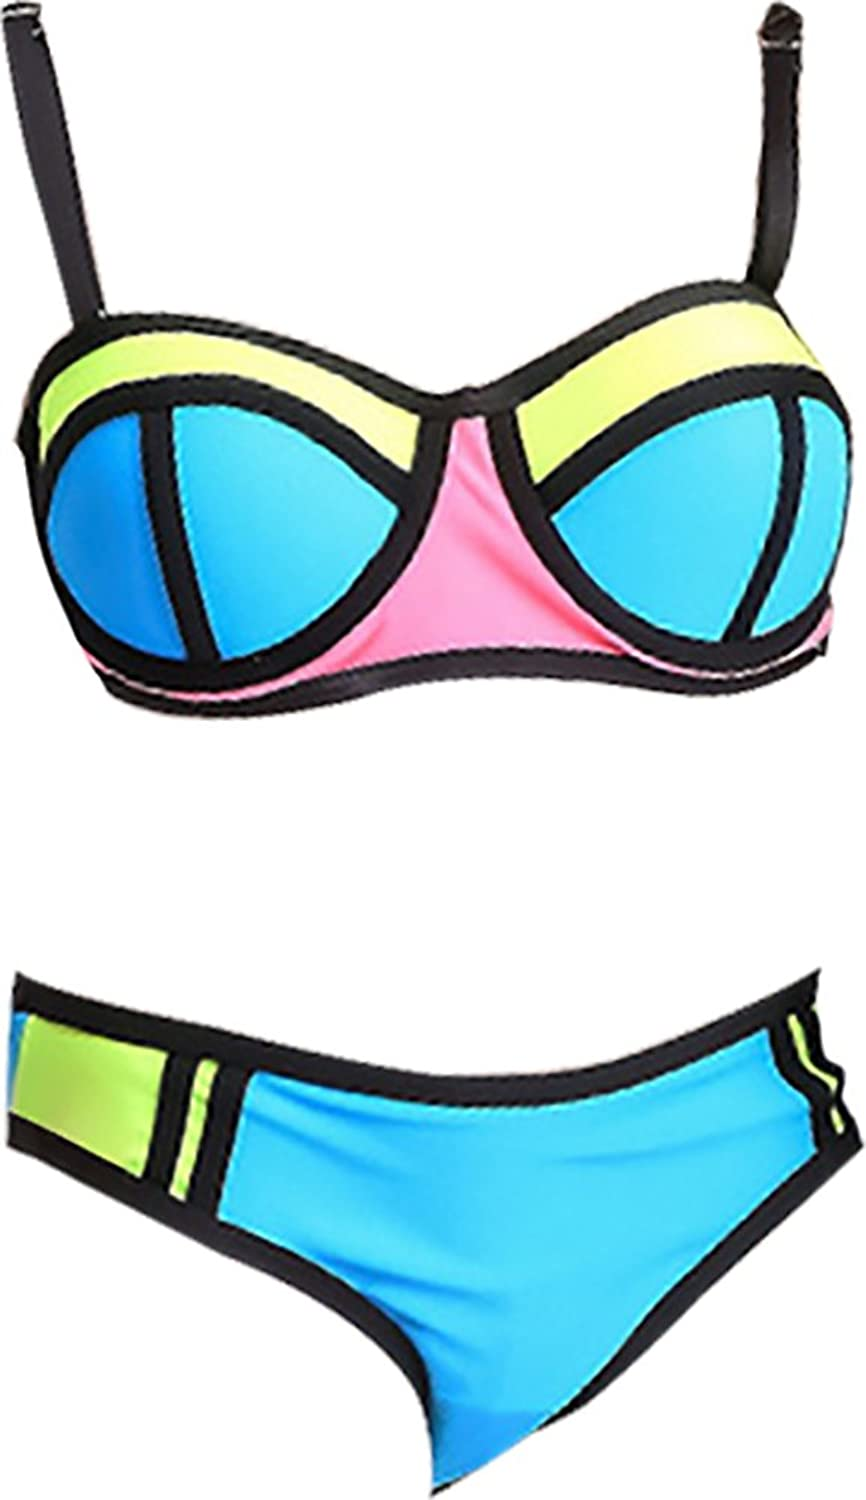 4ea97131be2b4 This swimsuit is so padded and has under wire. It will work for a girl who  is hard to shop for. Adjustable halterneck. For litte girls, we advice you  can ...